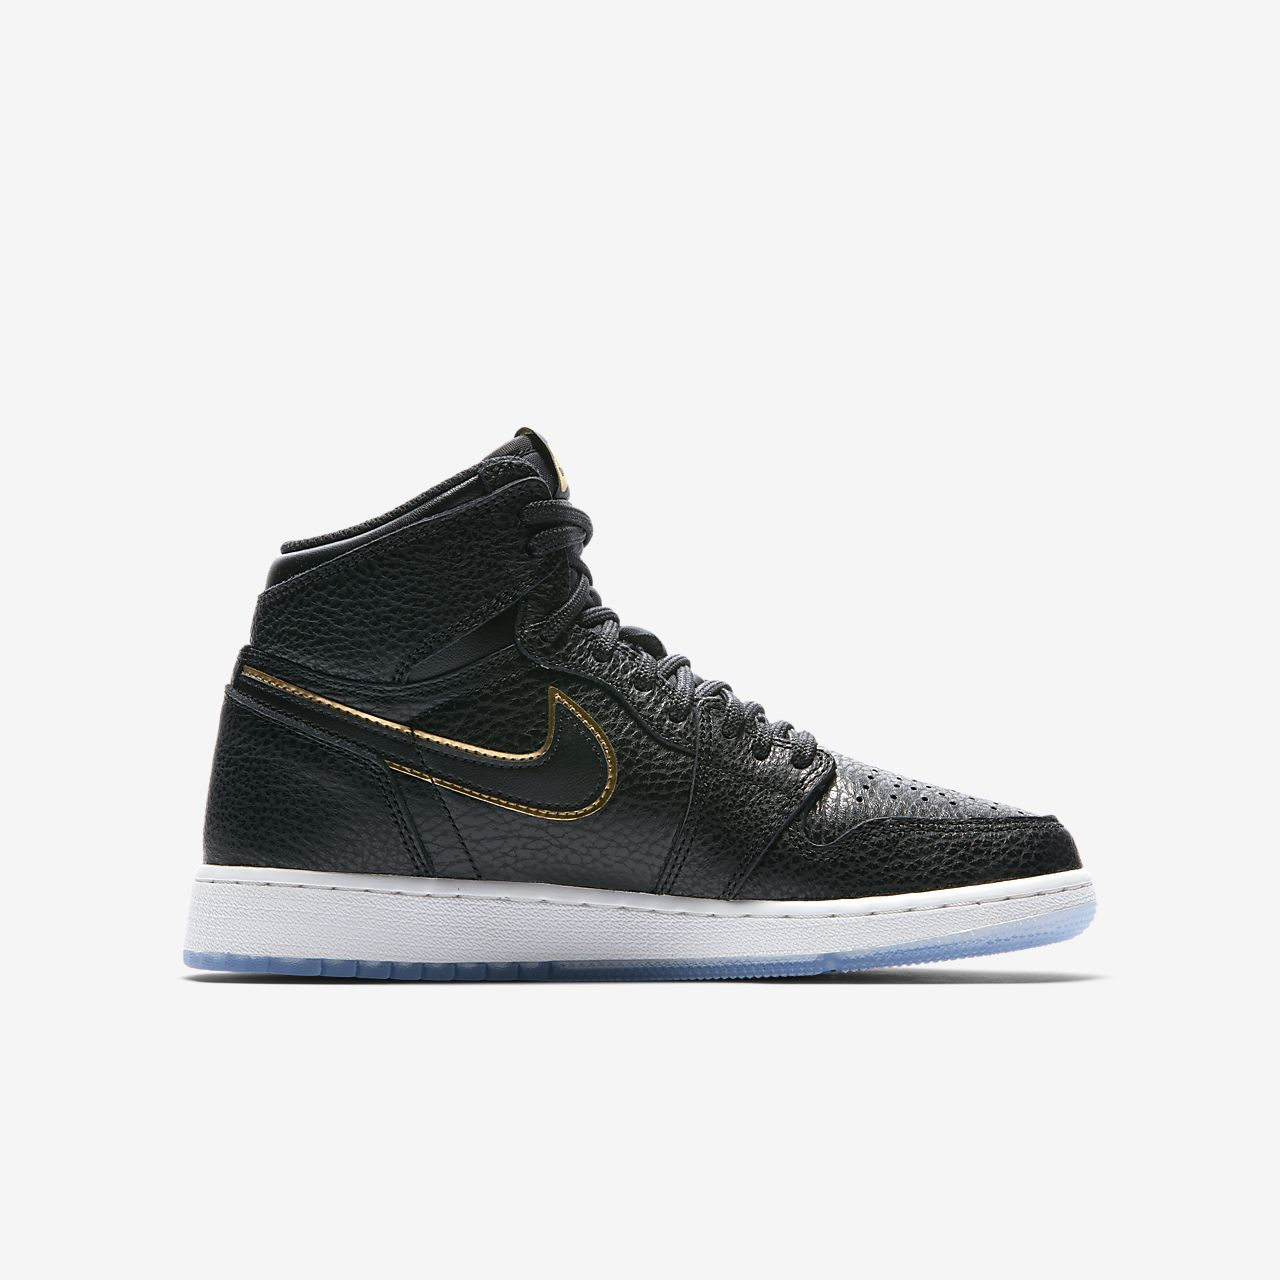 nike jordan retro 1 kids nz